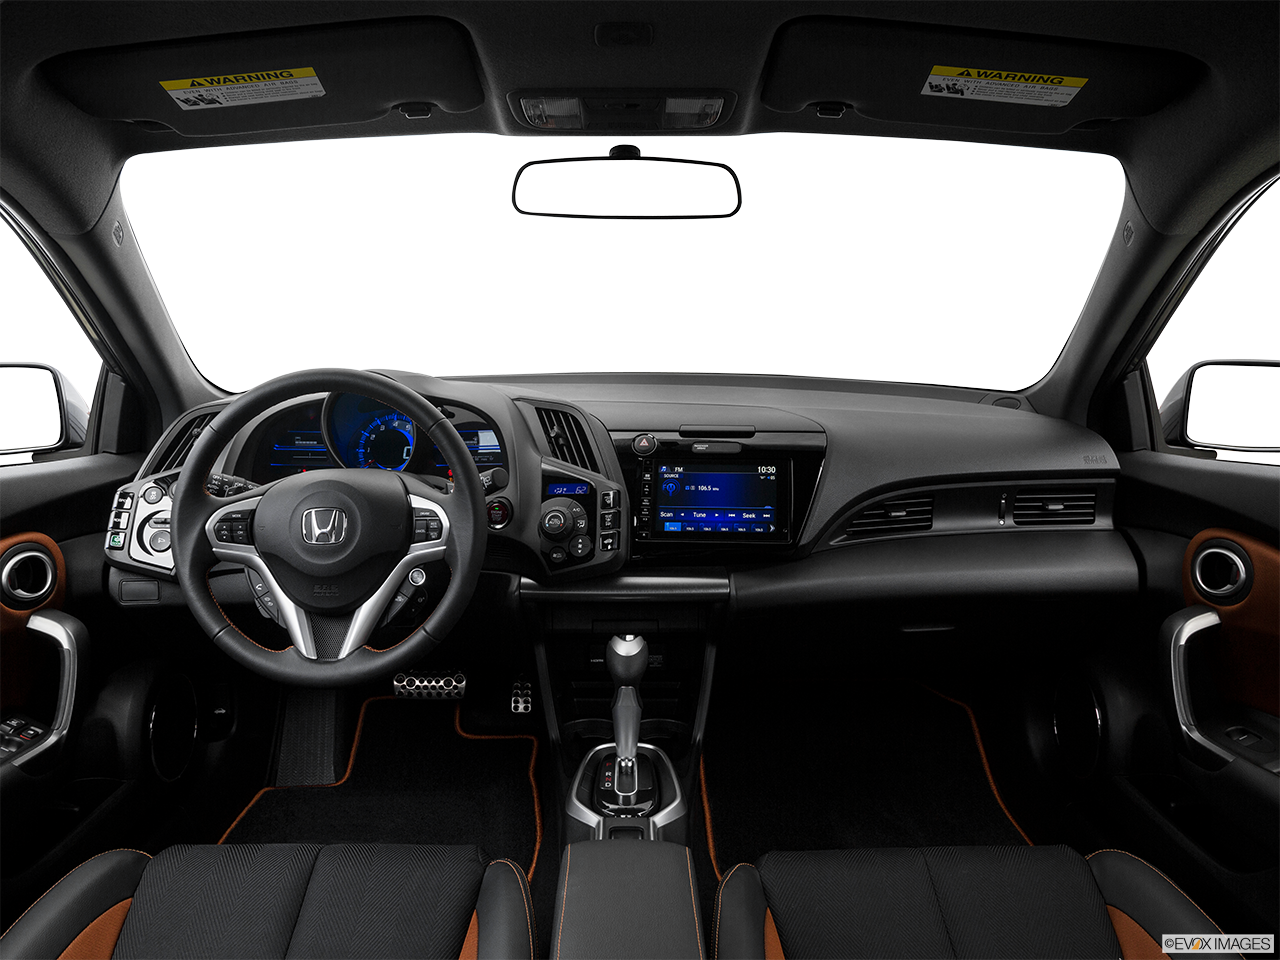 Interior View Of 2016 Honda CR-Z in Los Angeles